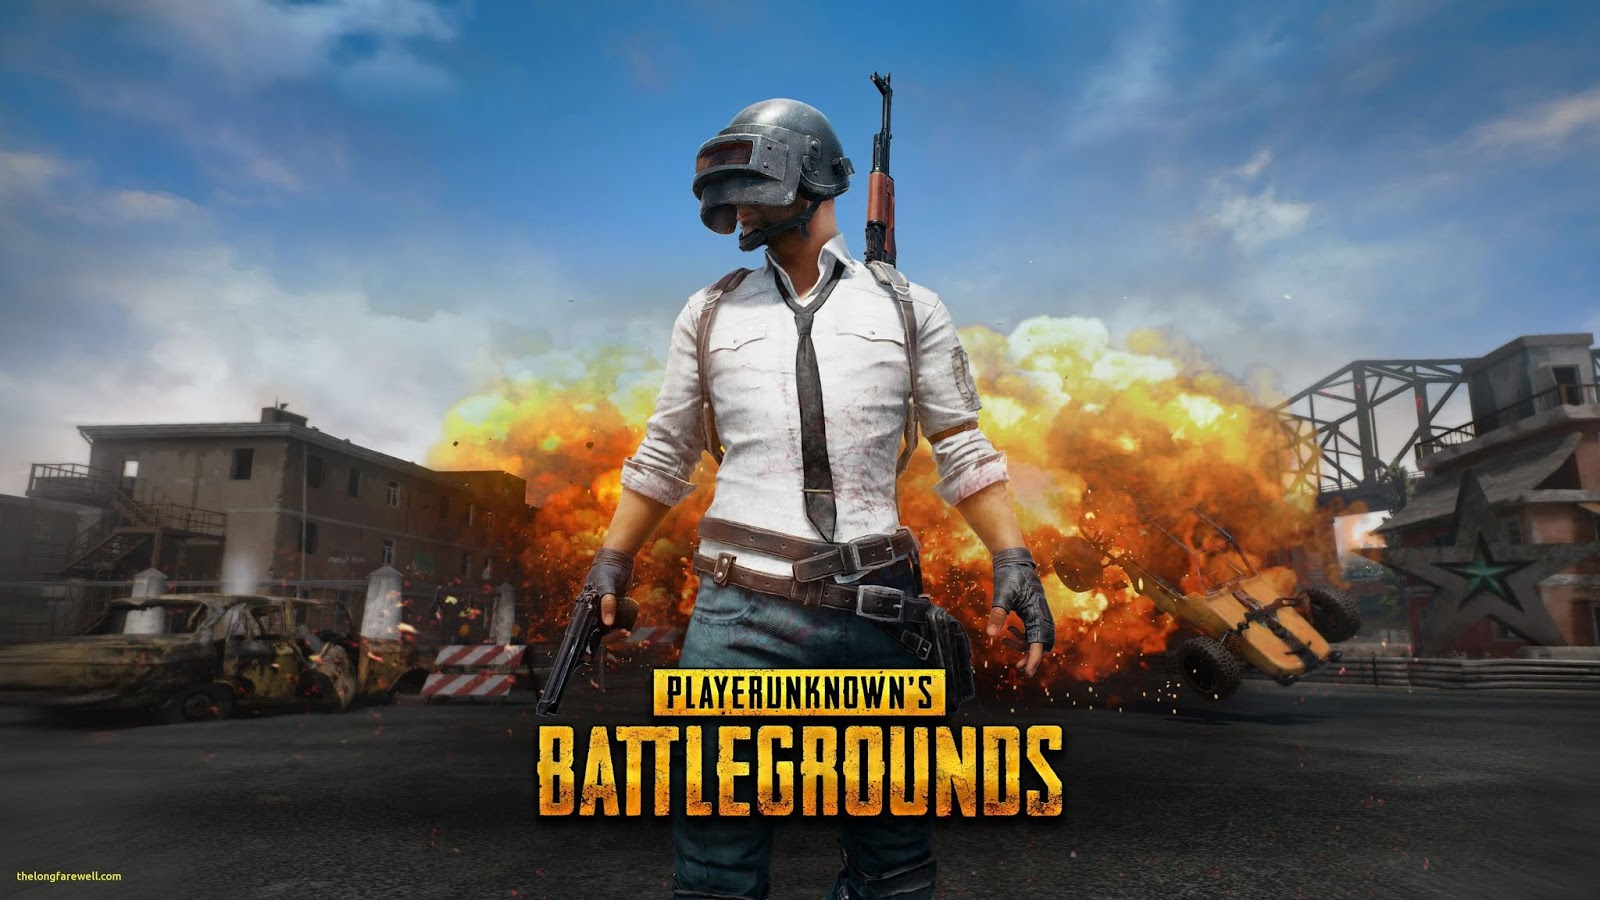 WHY PUBG MOBILE IS SO POPULAR?